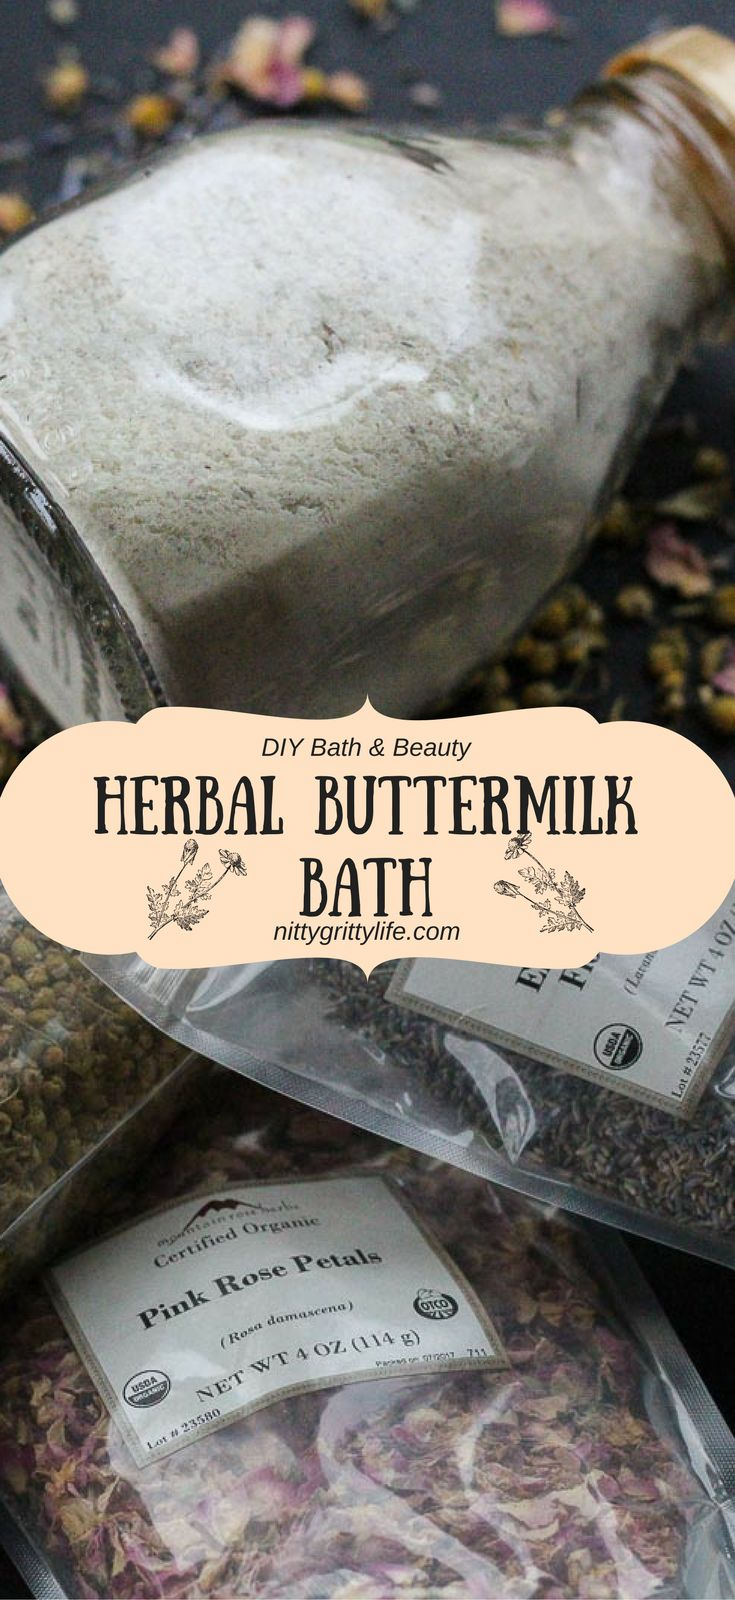 An indulgent soak to leave you radiant and relaxed, this herbal buttermilk bath with Epsom salts is a perfect DIY blend for gifting and spoiling one's self! #buttermilkbath #herbalbath #bathsalts via @nittygrittylife